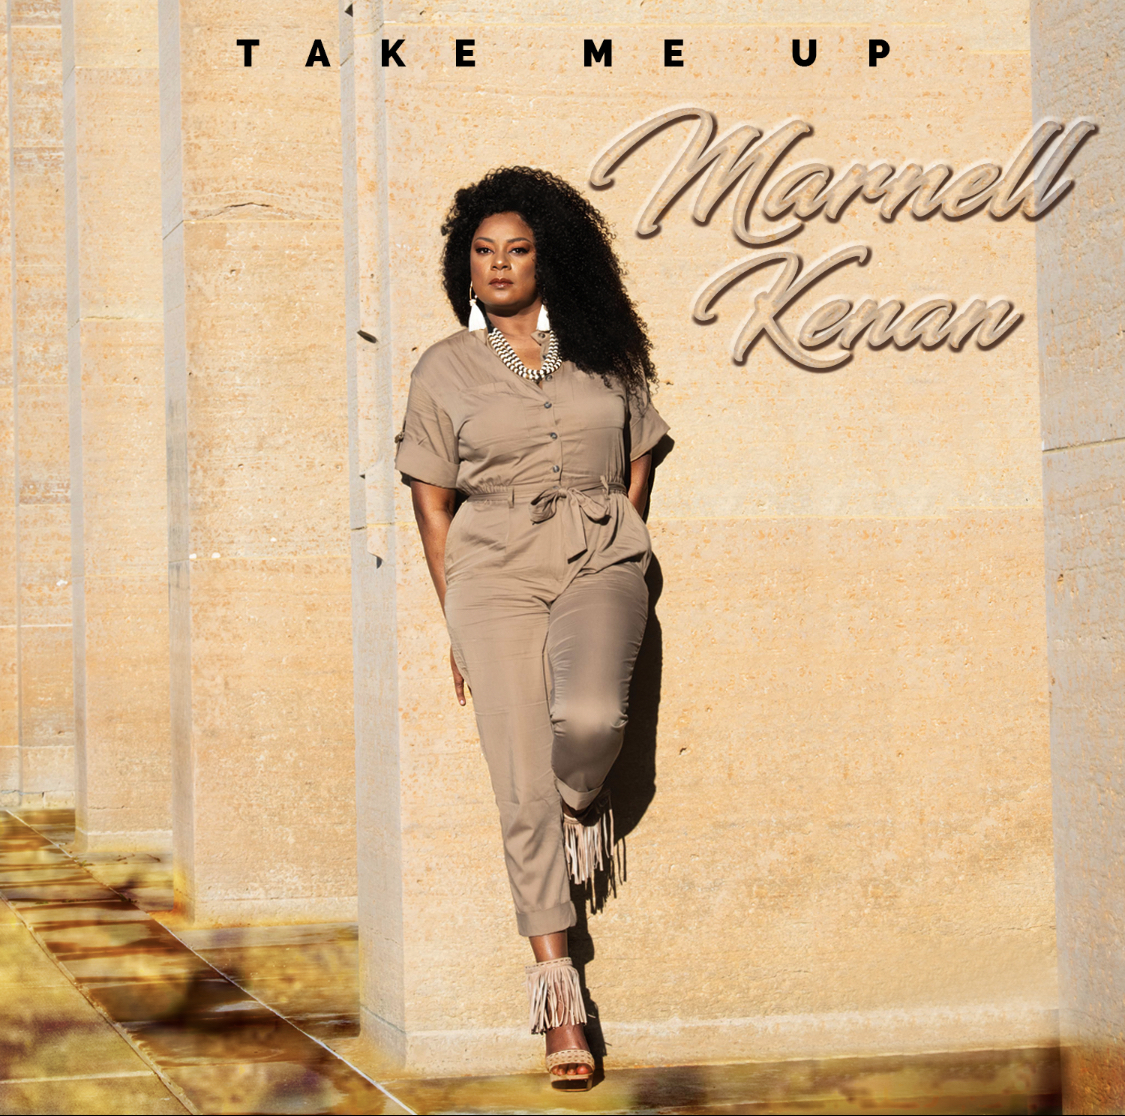 Background singer to the stars takes centre stage and releases Take Me Up, a homage to her gospel music roots